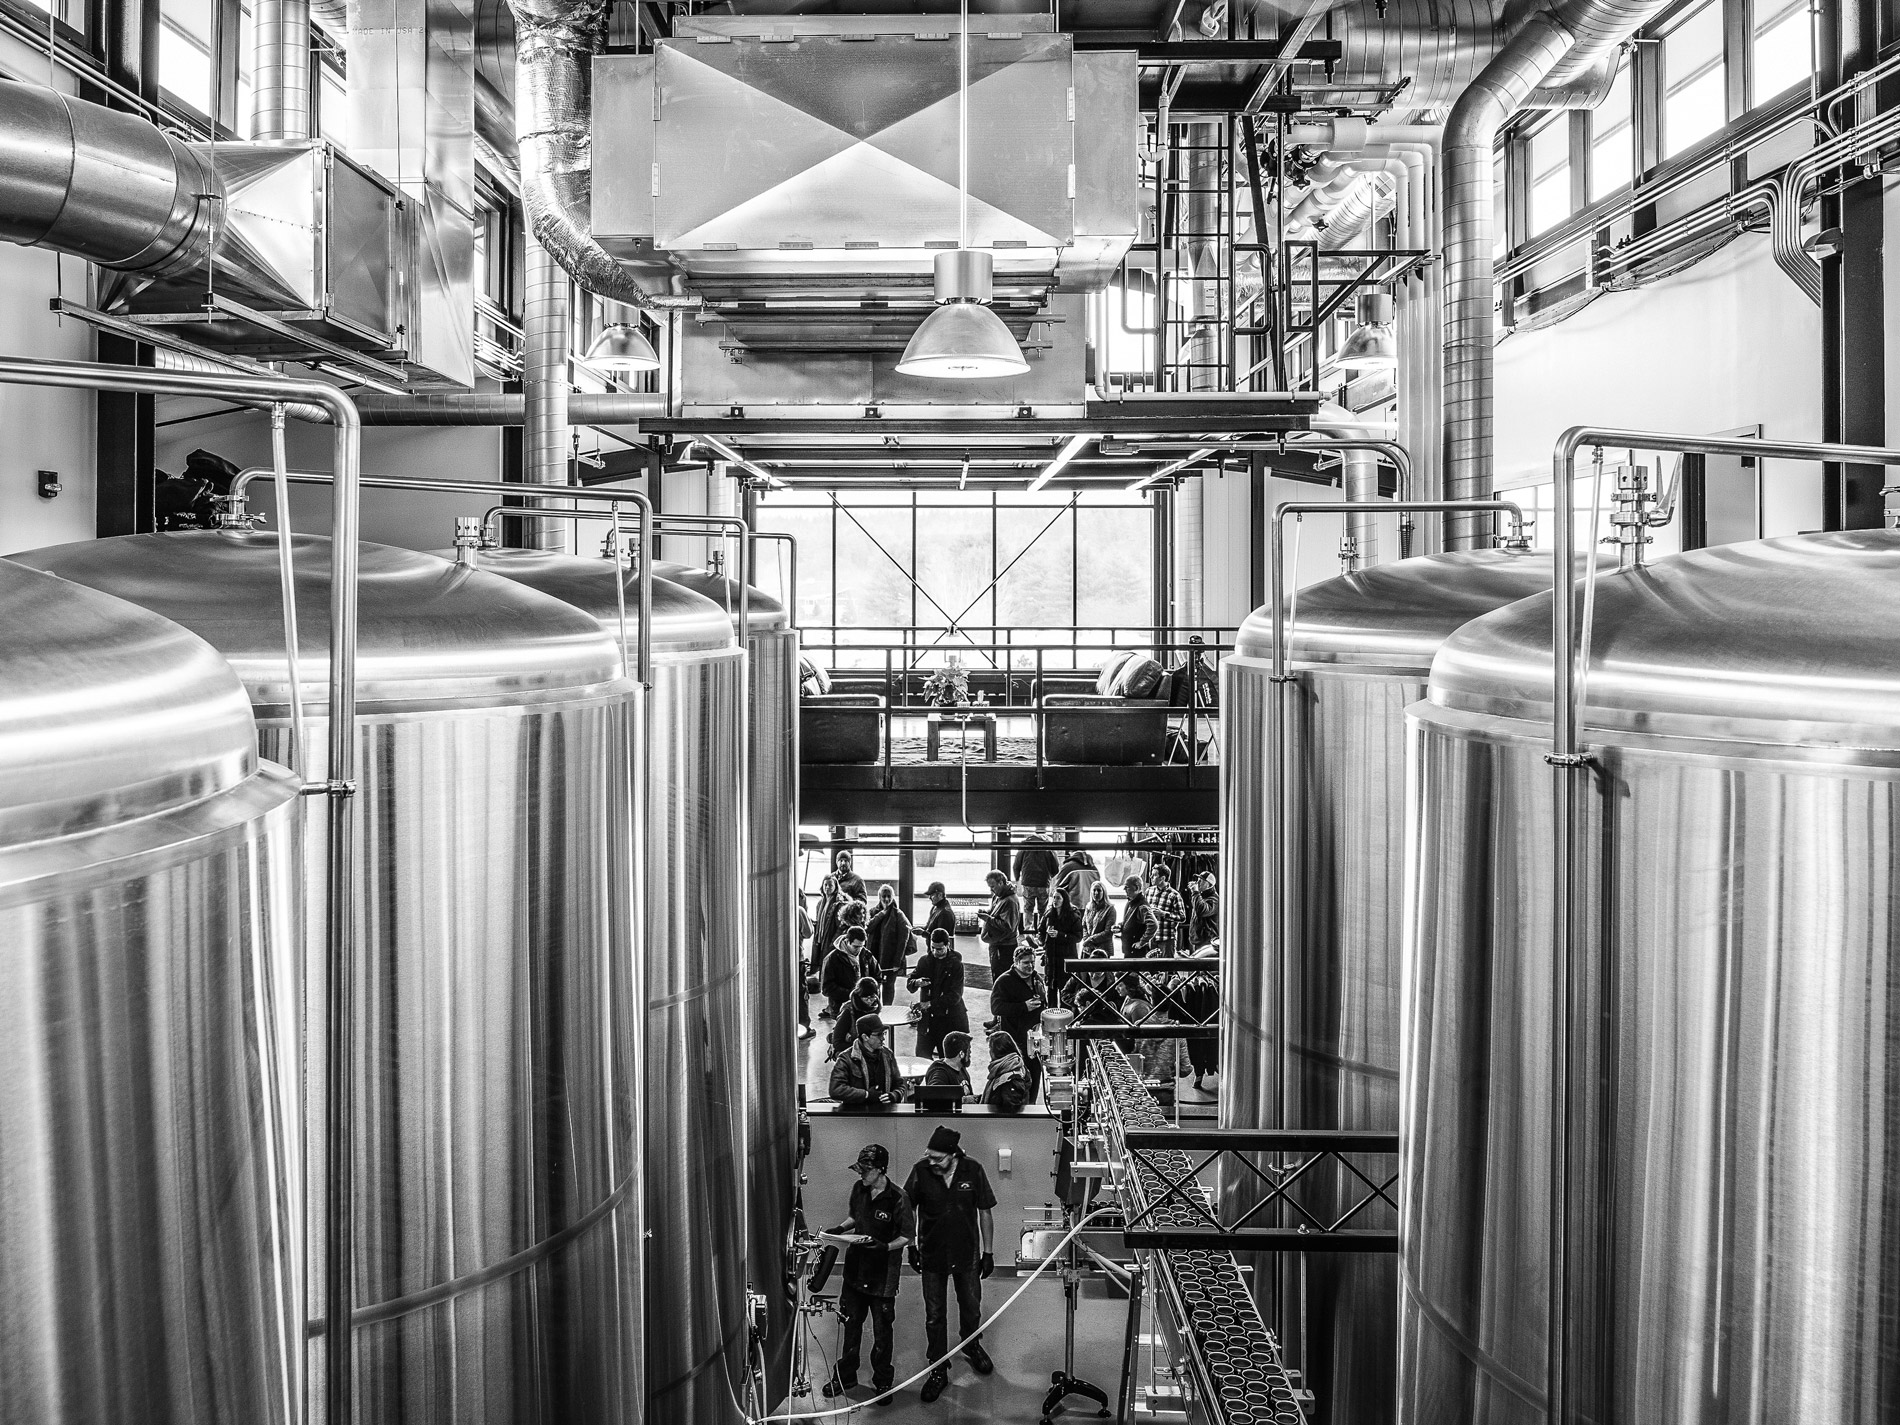 alchemist-heady-topper-brewery-view-FT-BLOG0217.jpg